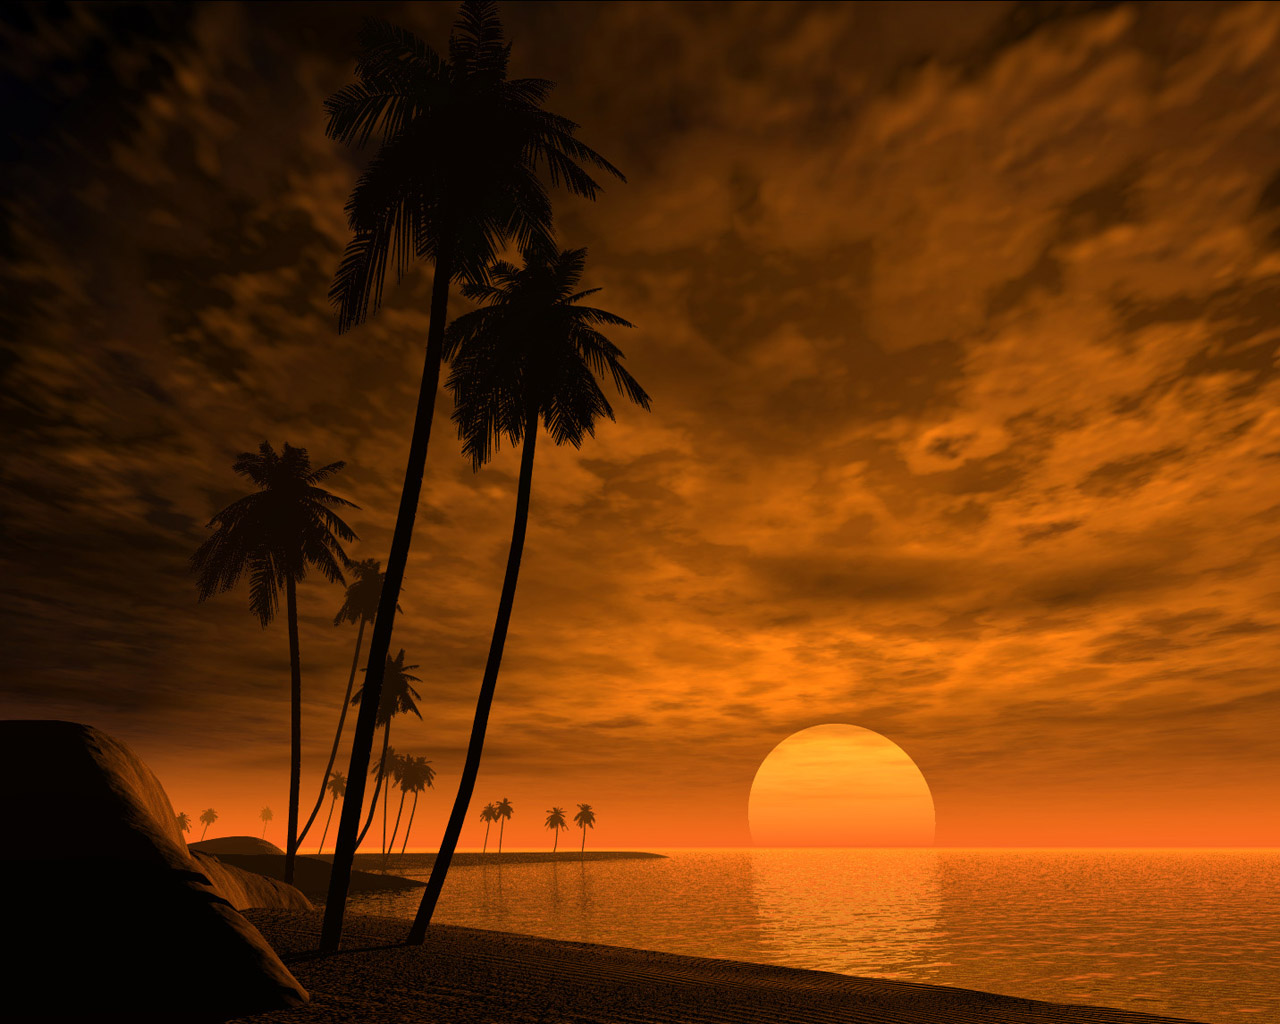 Sunset, sea and palm trees - wallpaper